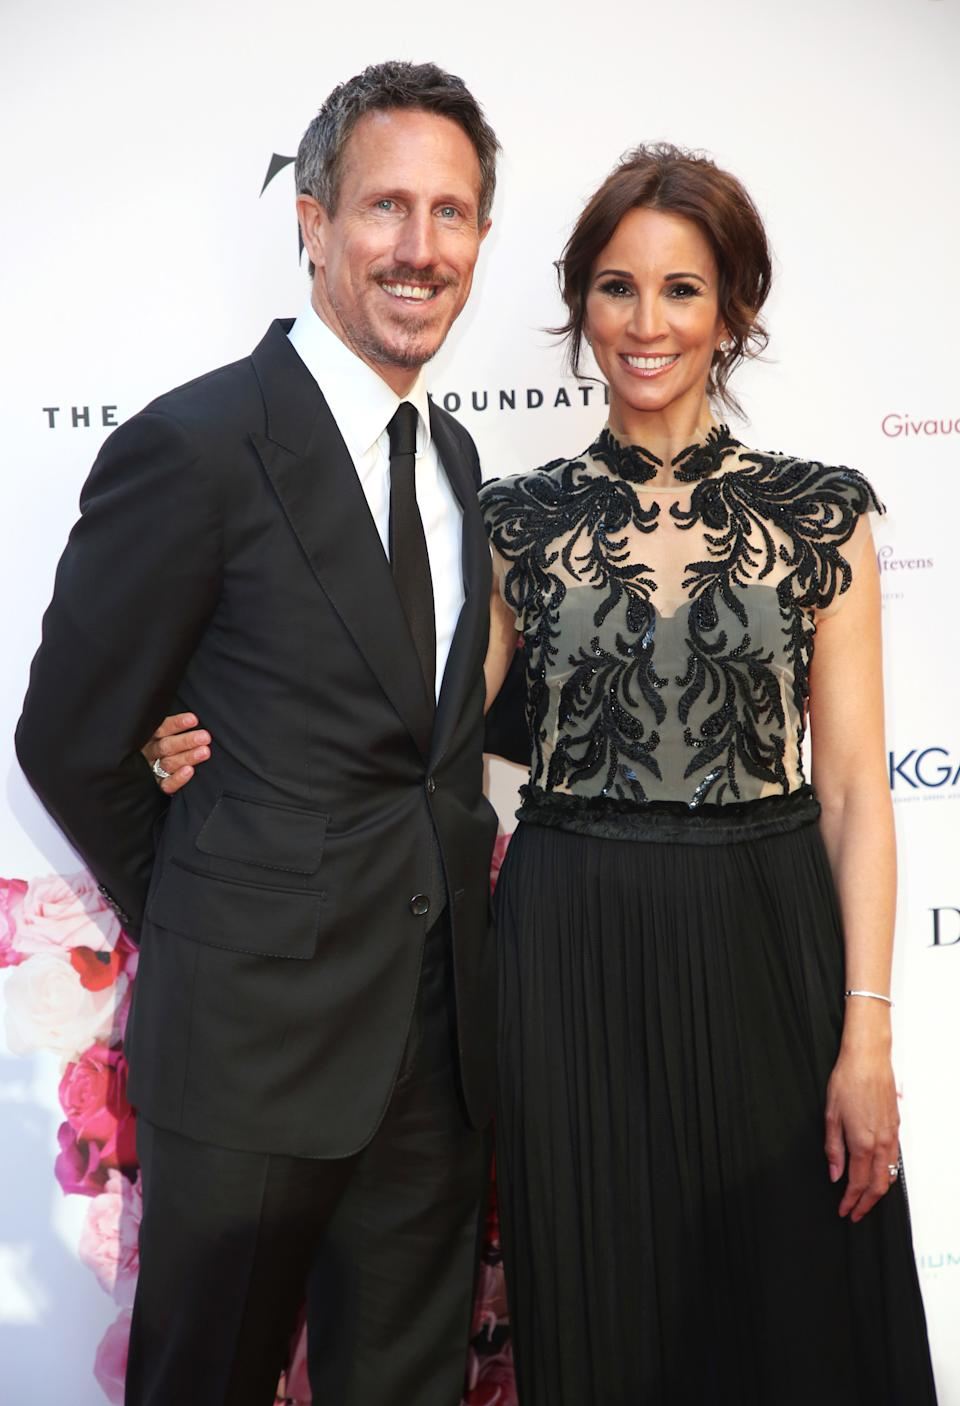 LONDON, UNITED KINGDOM - 2019/05/16: Andrea McLean and Nick Feeney attend the Fragrance Foundation Awards 2019 at The Brewery in London. (Photo by Brett Cove/SOPA Images/LightRocket via Getty Images)